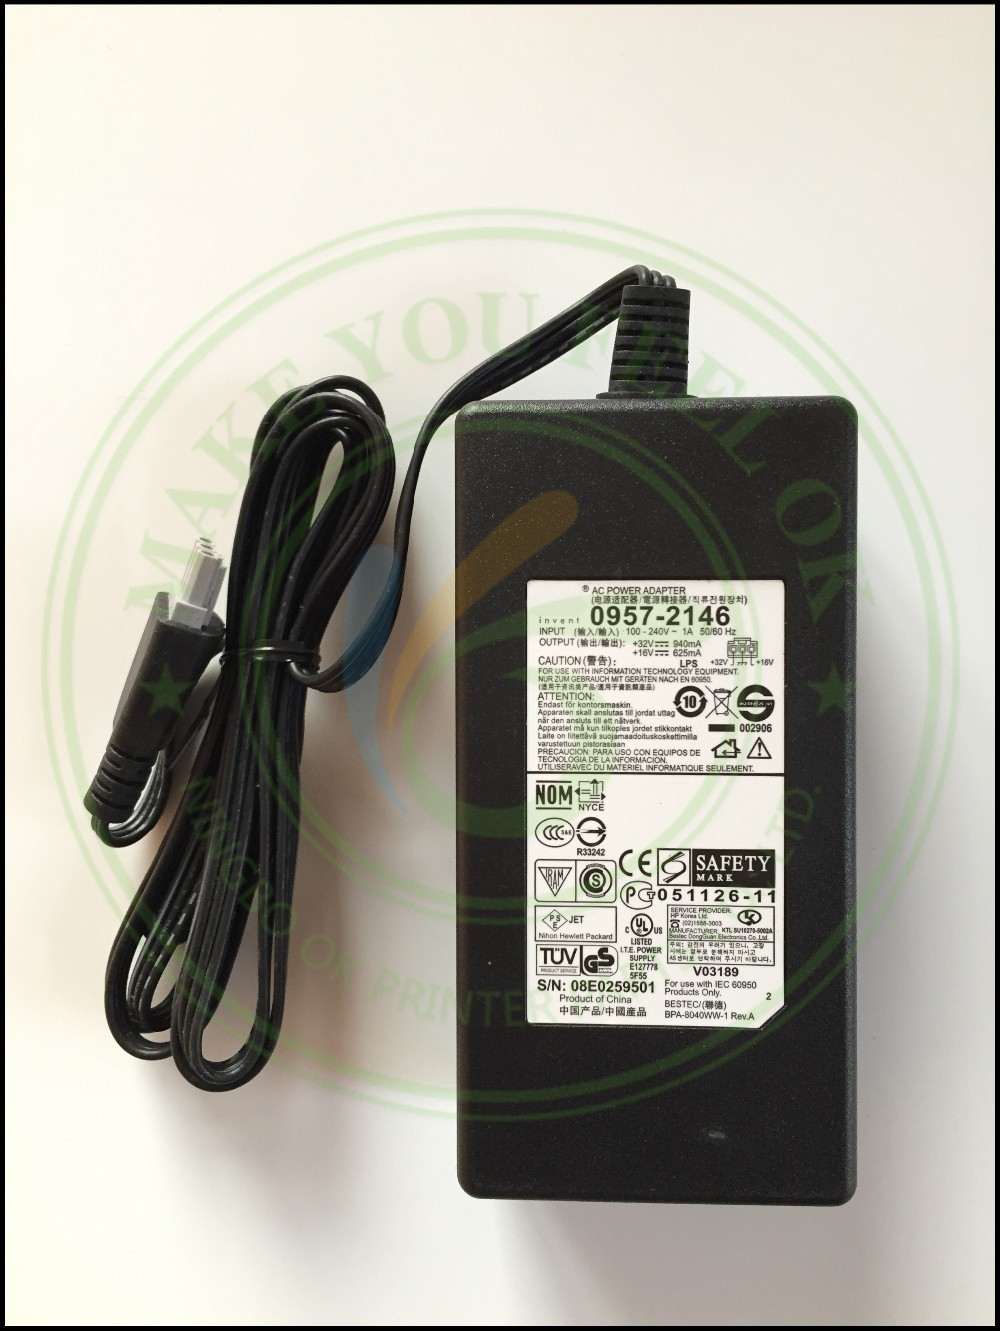 цена на ORIGINAL NEW 0957-2178 0957-2146 0957-2166 AC Power Adapter Charger 100 - 240V 1A 50/60Hz 32V 940mA 16V 625mA for HP printer